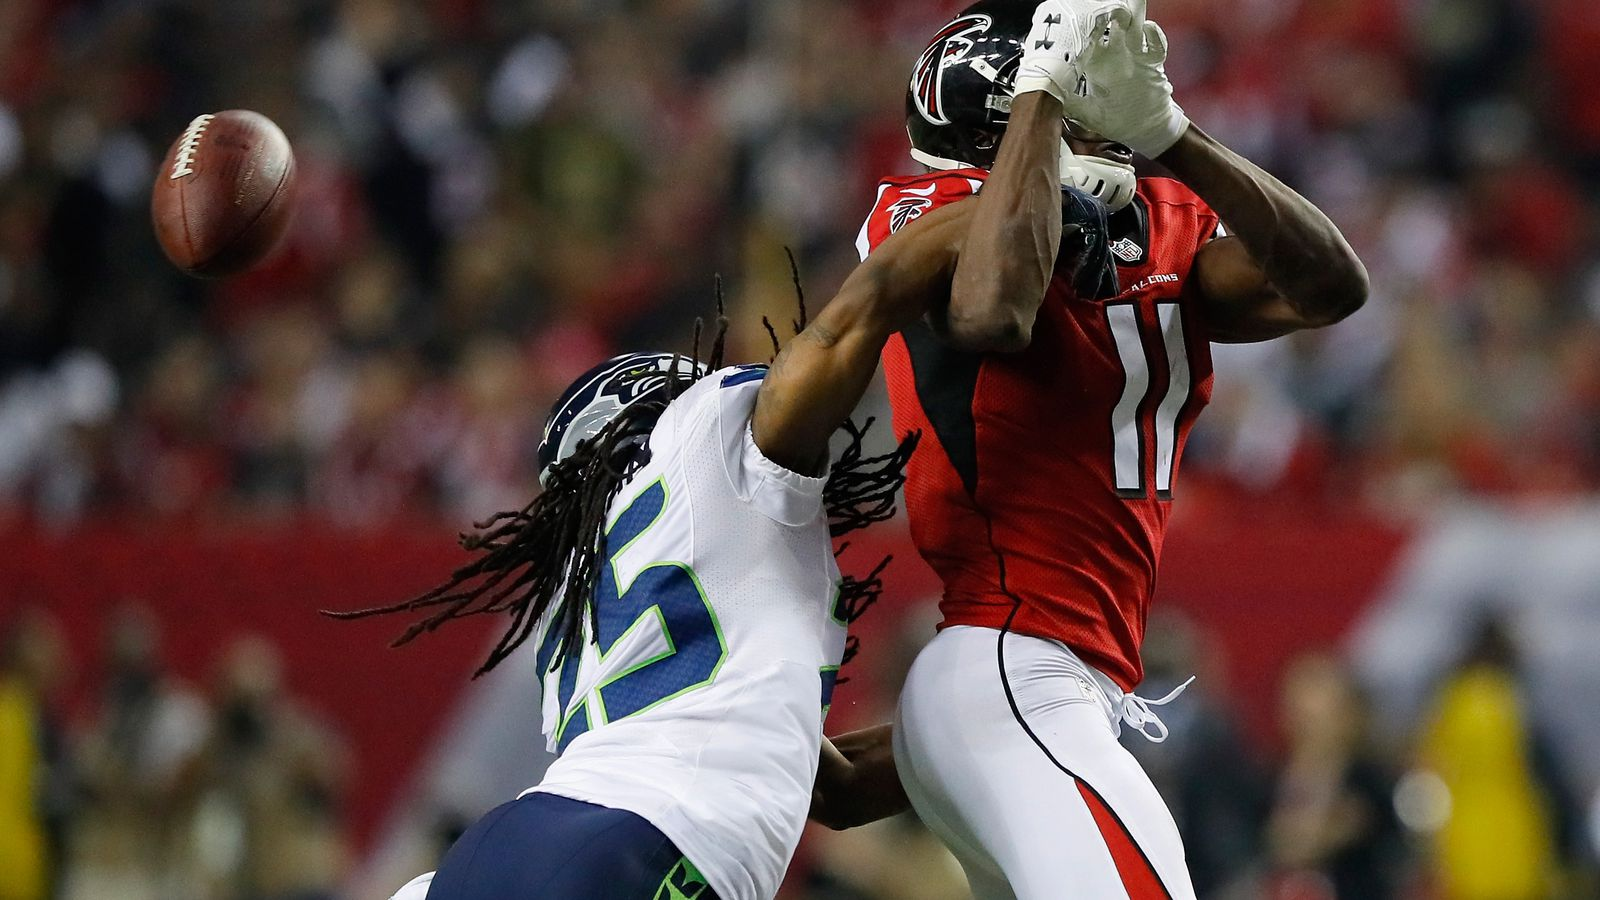 Failure to disclose injury could cost Seattle Seahawks a 2nd-round pick